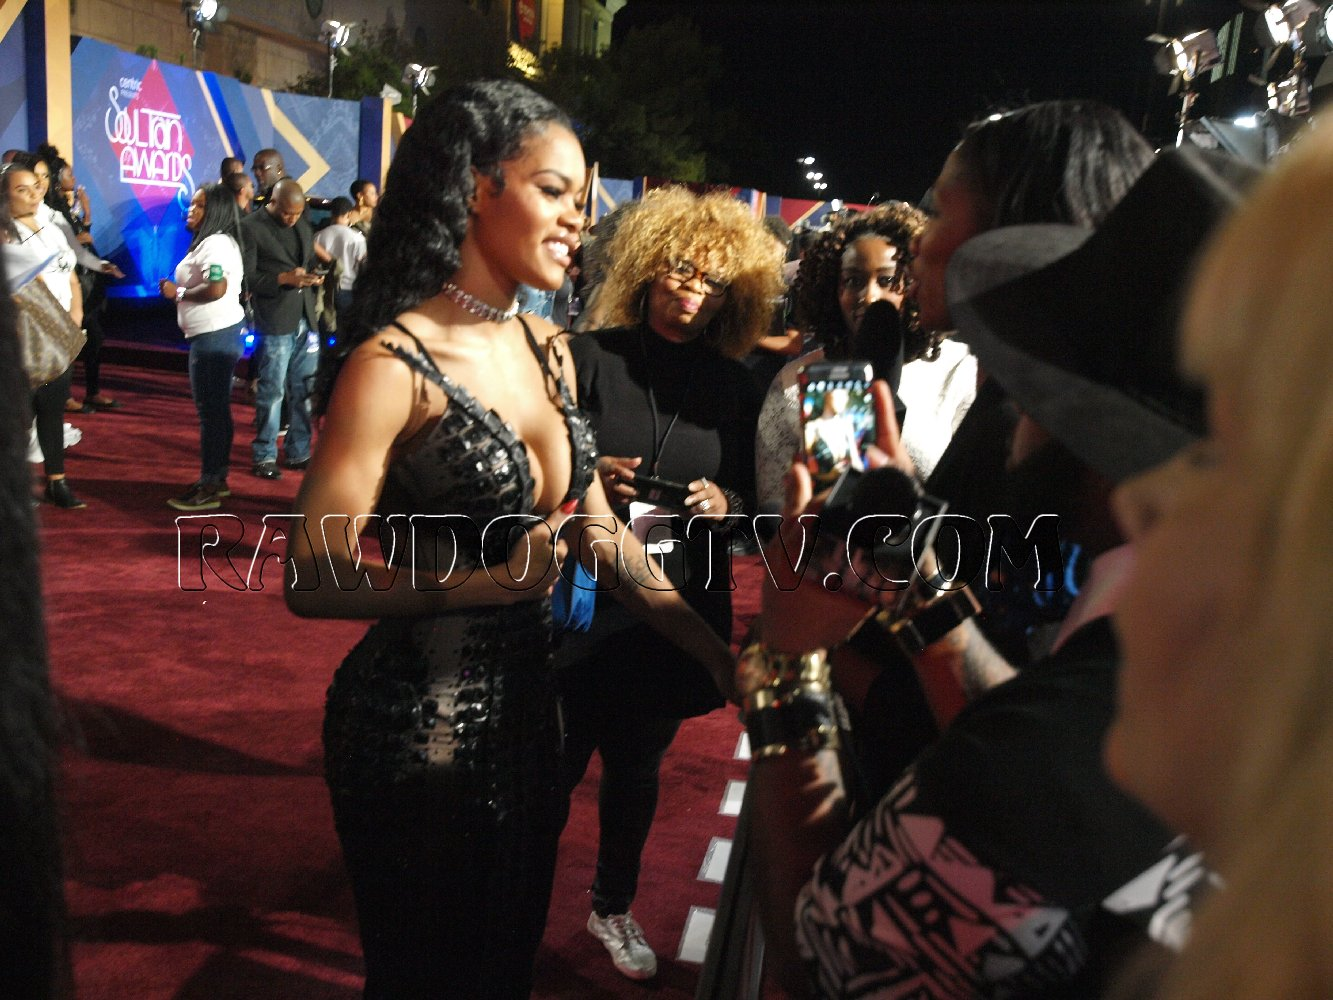 soul-train-music-awards-2016-photos-air-date-nov-27th-bet-centric-pr-mobilewire-305-490-2182-47